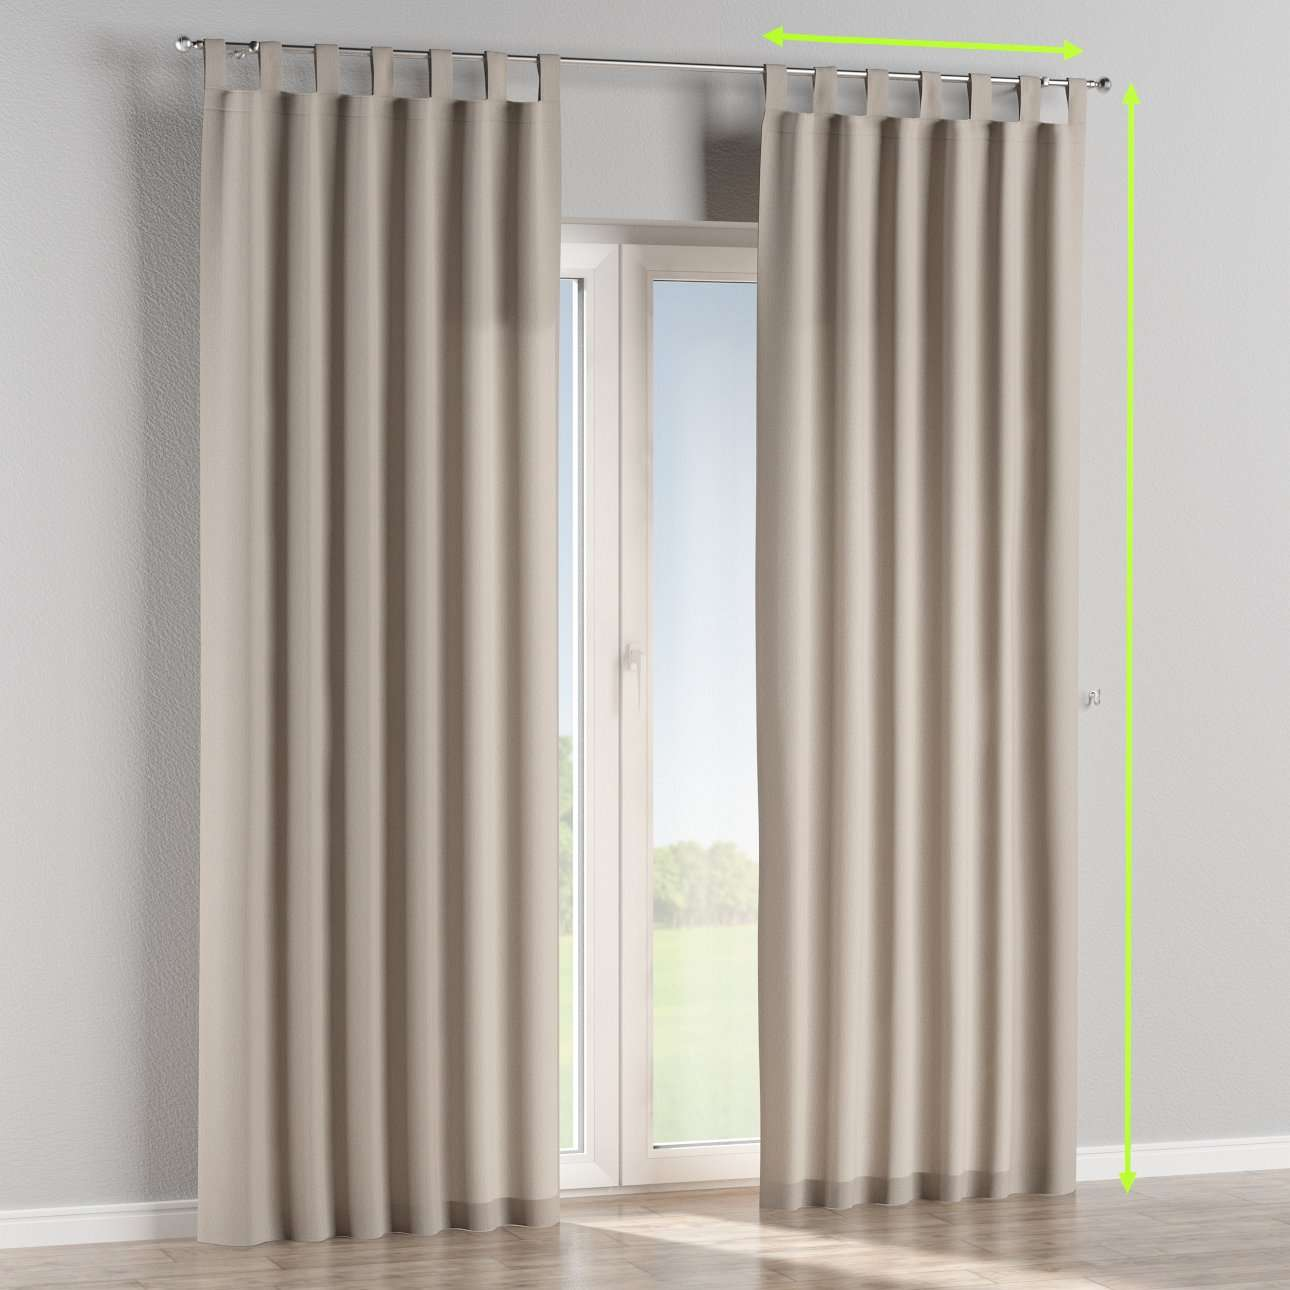 Tab top curtains in collection Chenille, fabric: 702-23